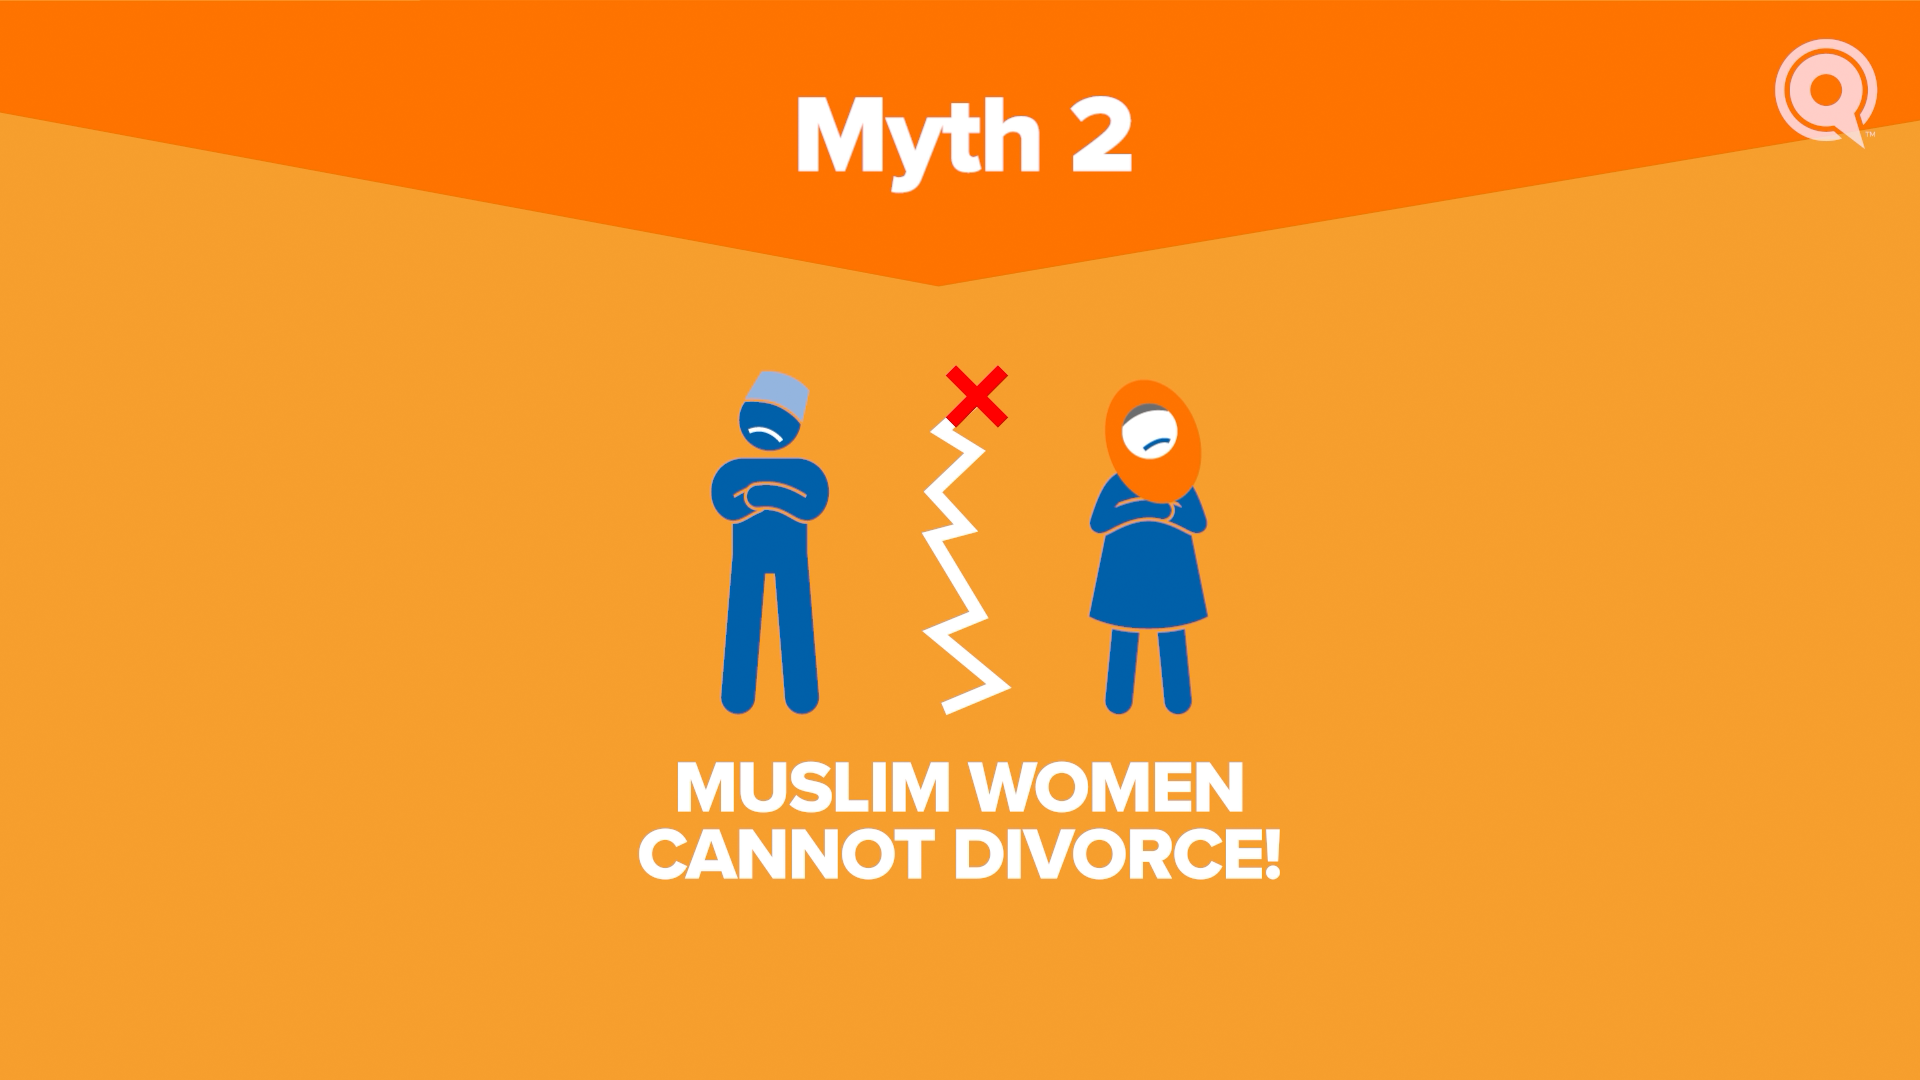 Can Muslim Women Divorce?